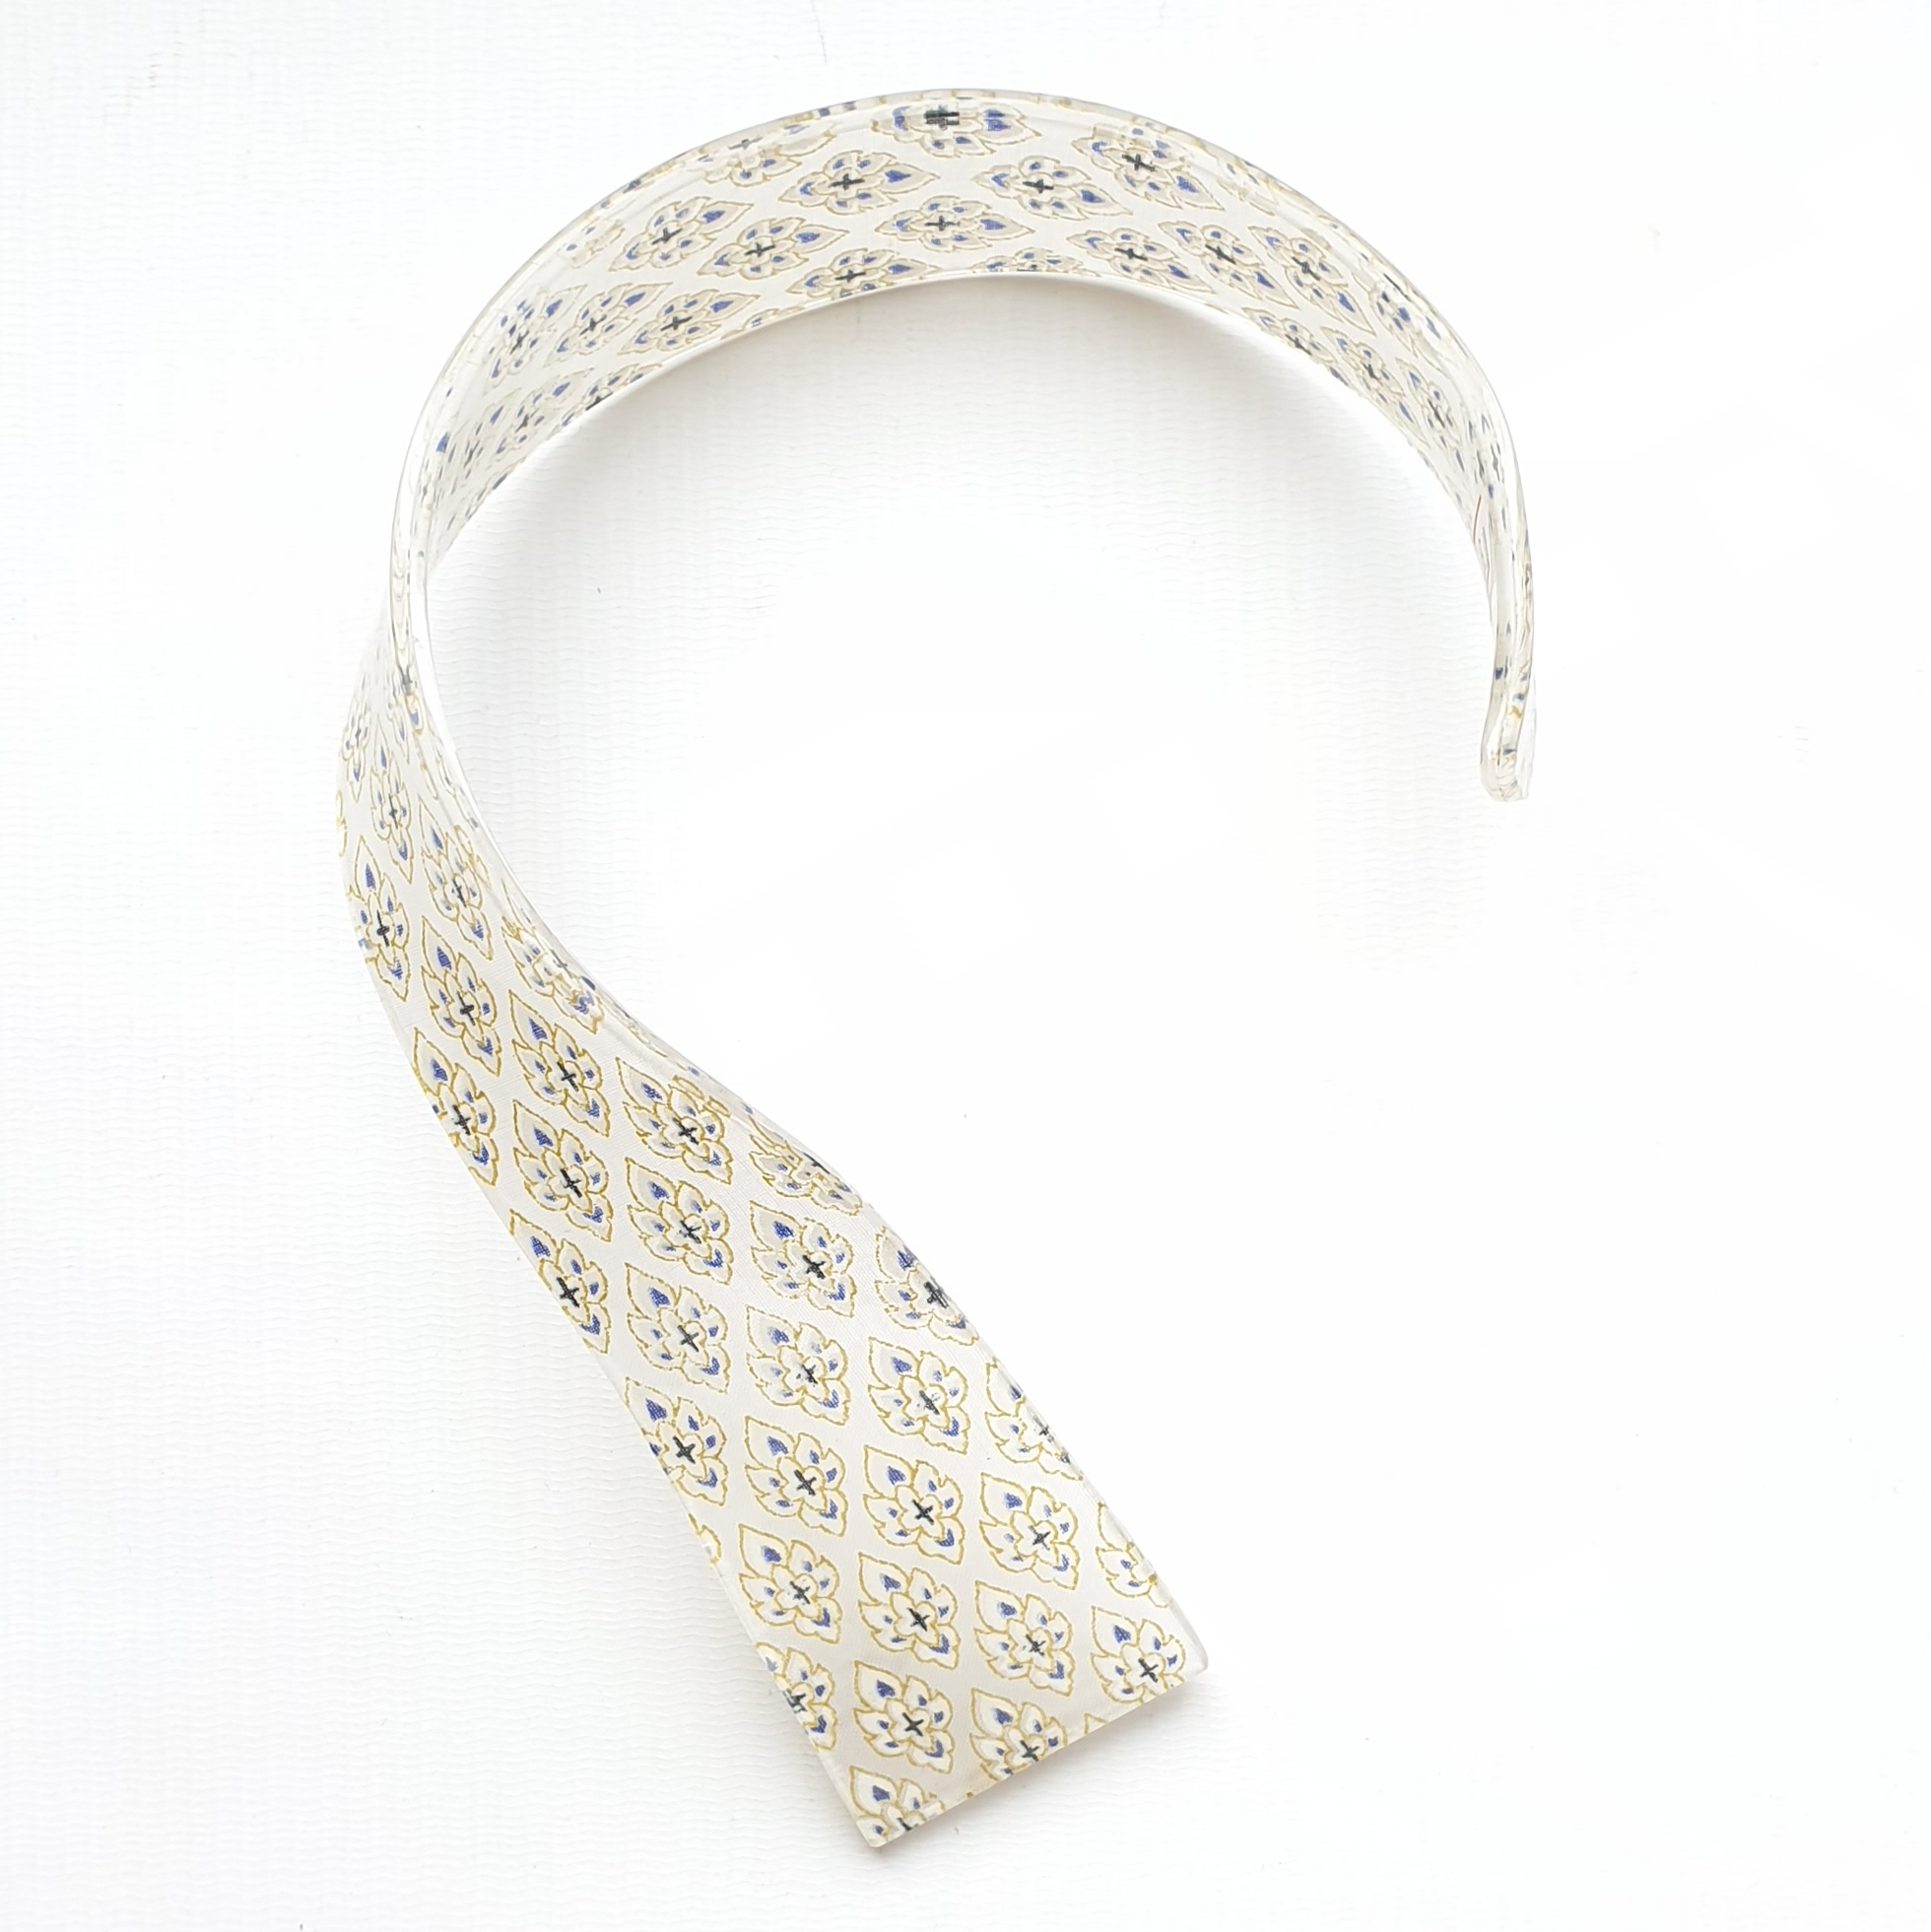 neckpiece resin print white/gold/navy